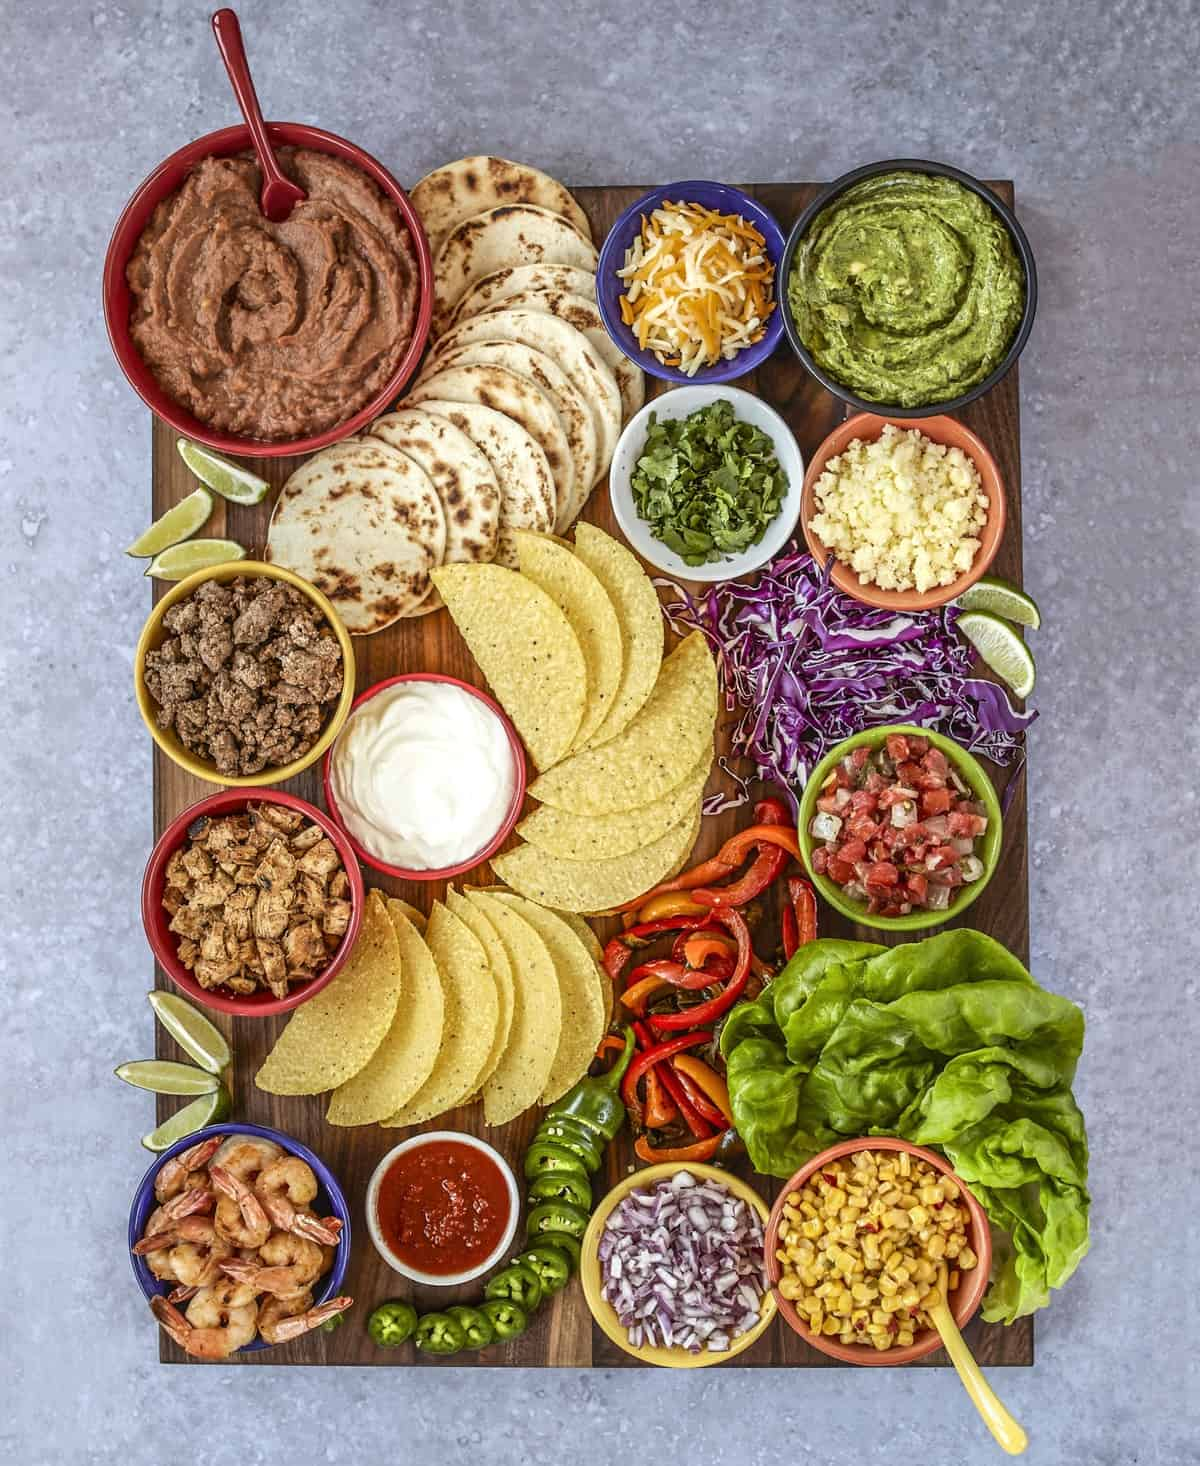 Build-Your-Own Taco Board by The BakerMama